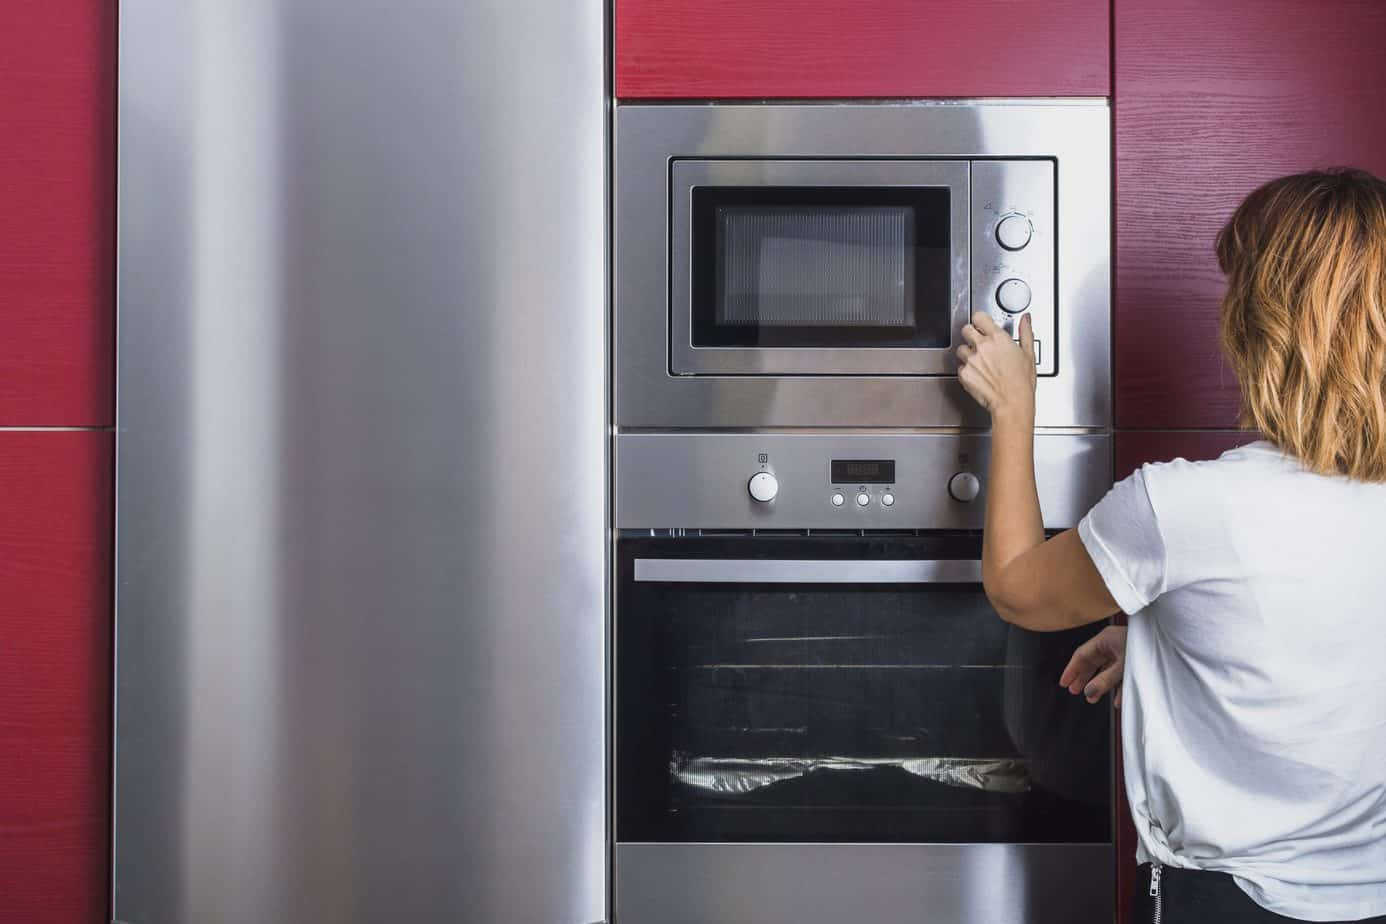 Using Microfibre Cloths to Clean Stainless Steel Appliances